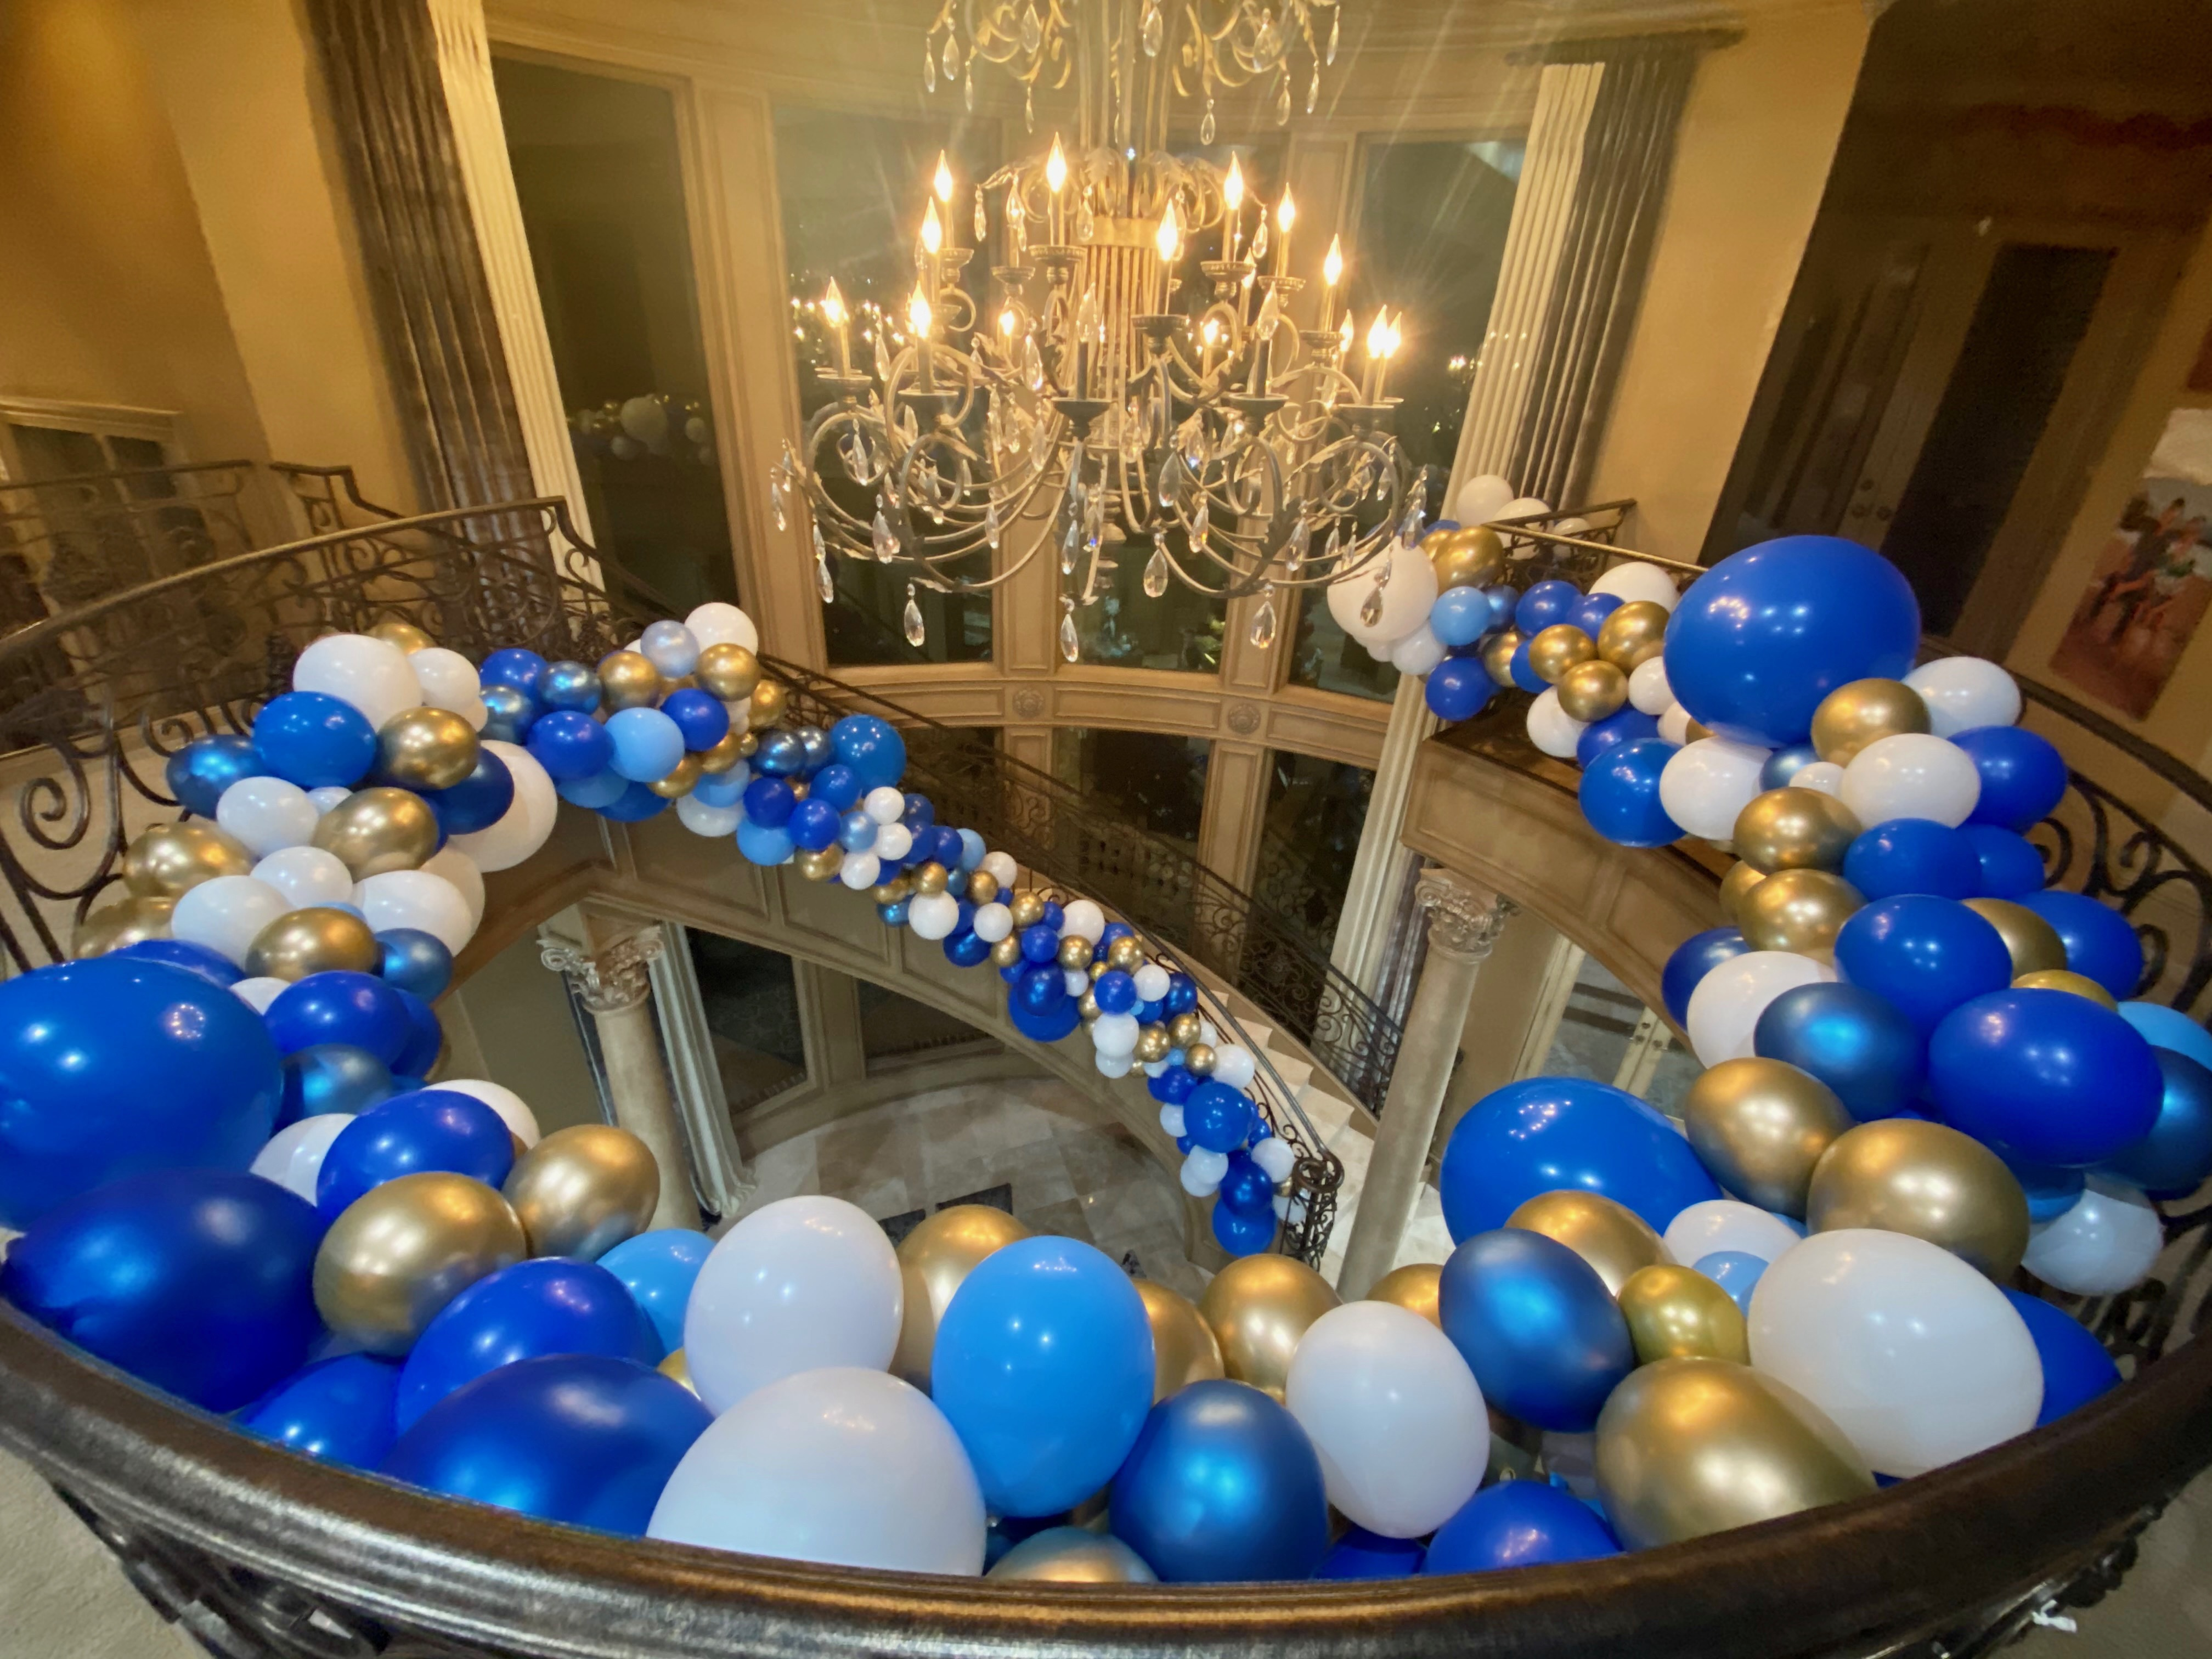 Frisco Balloon Ladies Balloons Make Any Party Come To Life